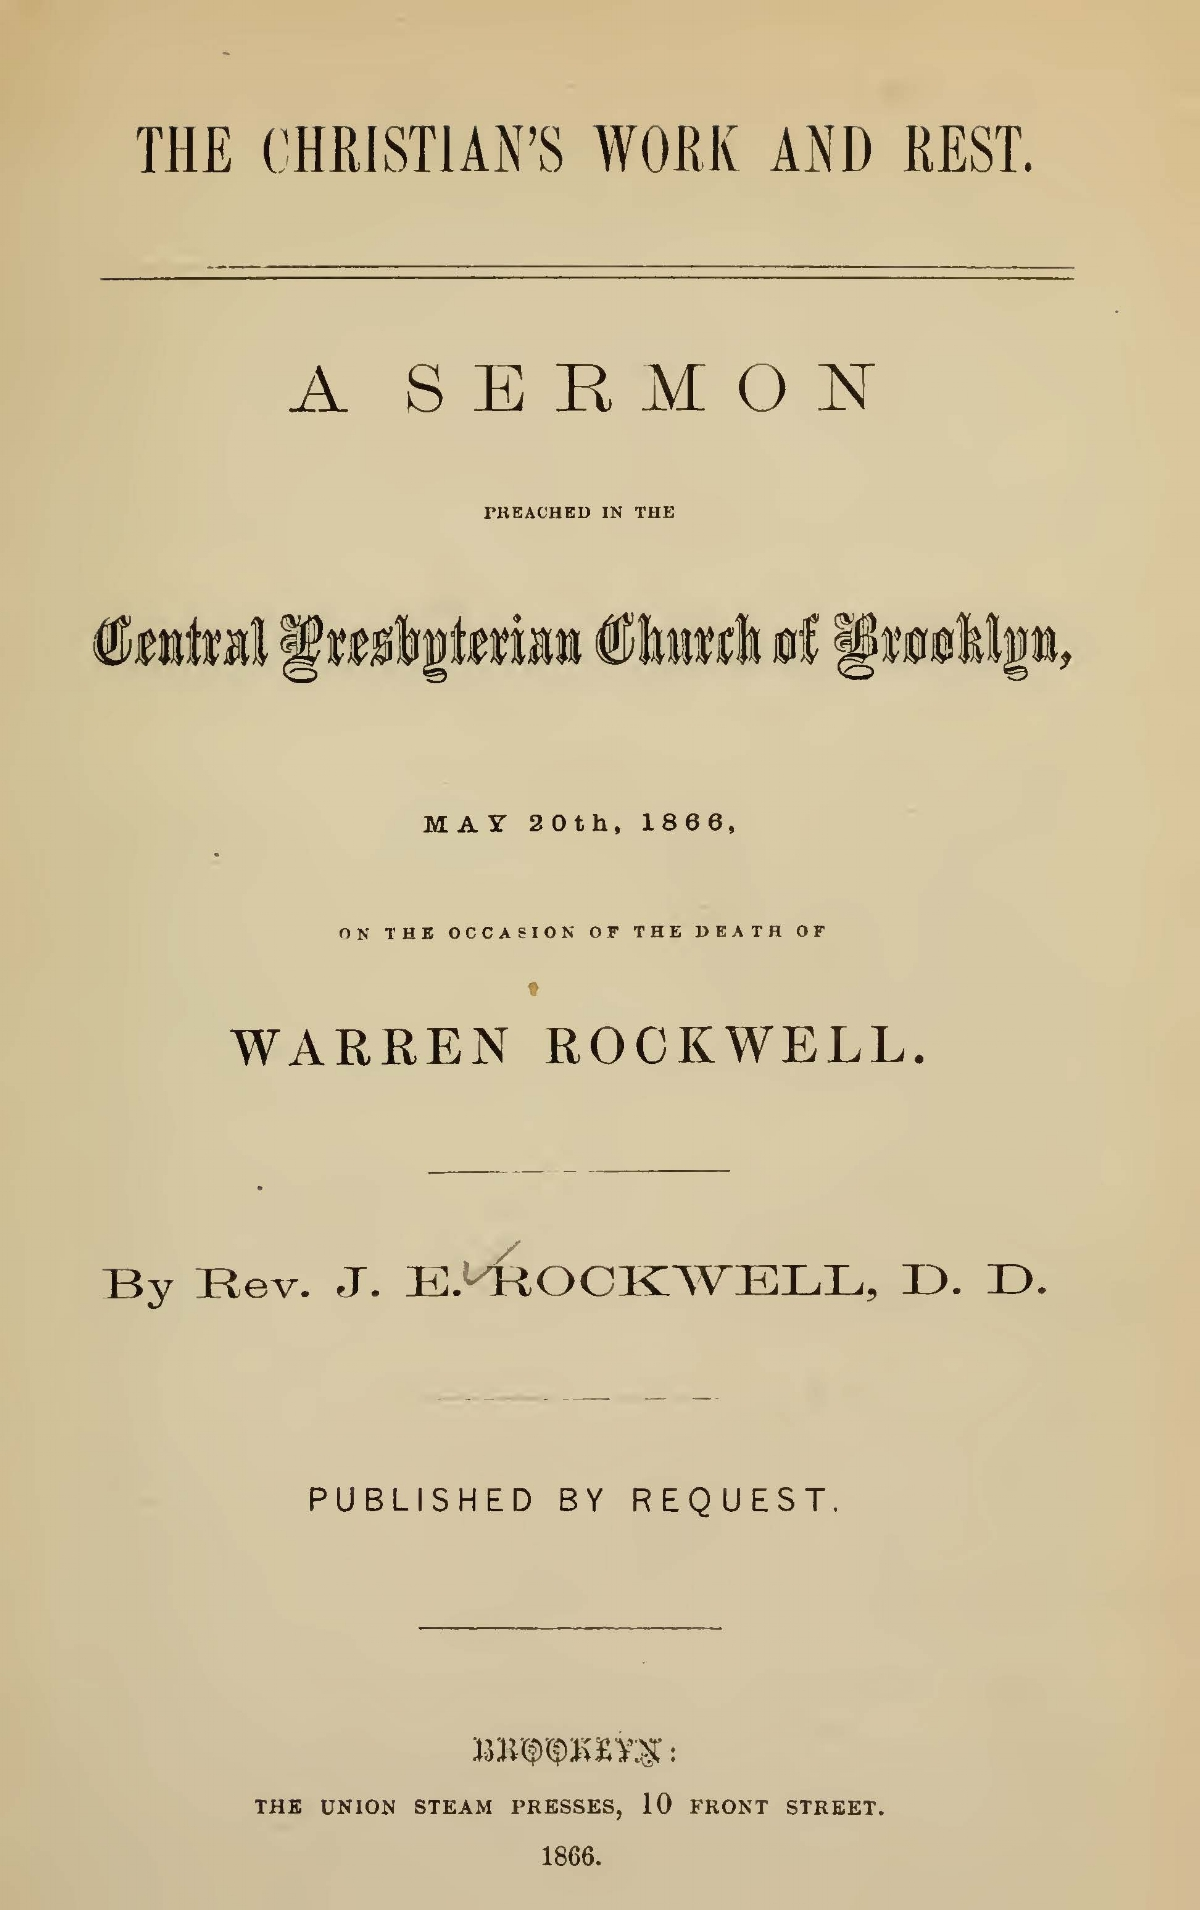 Rockwell, Joel Edson, The Christian's Work and Rest Title Page.jpg